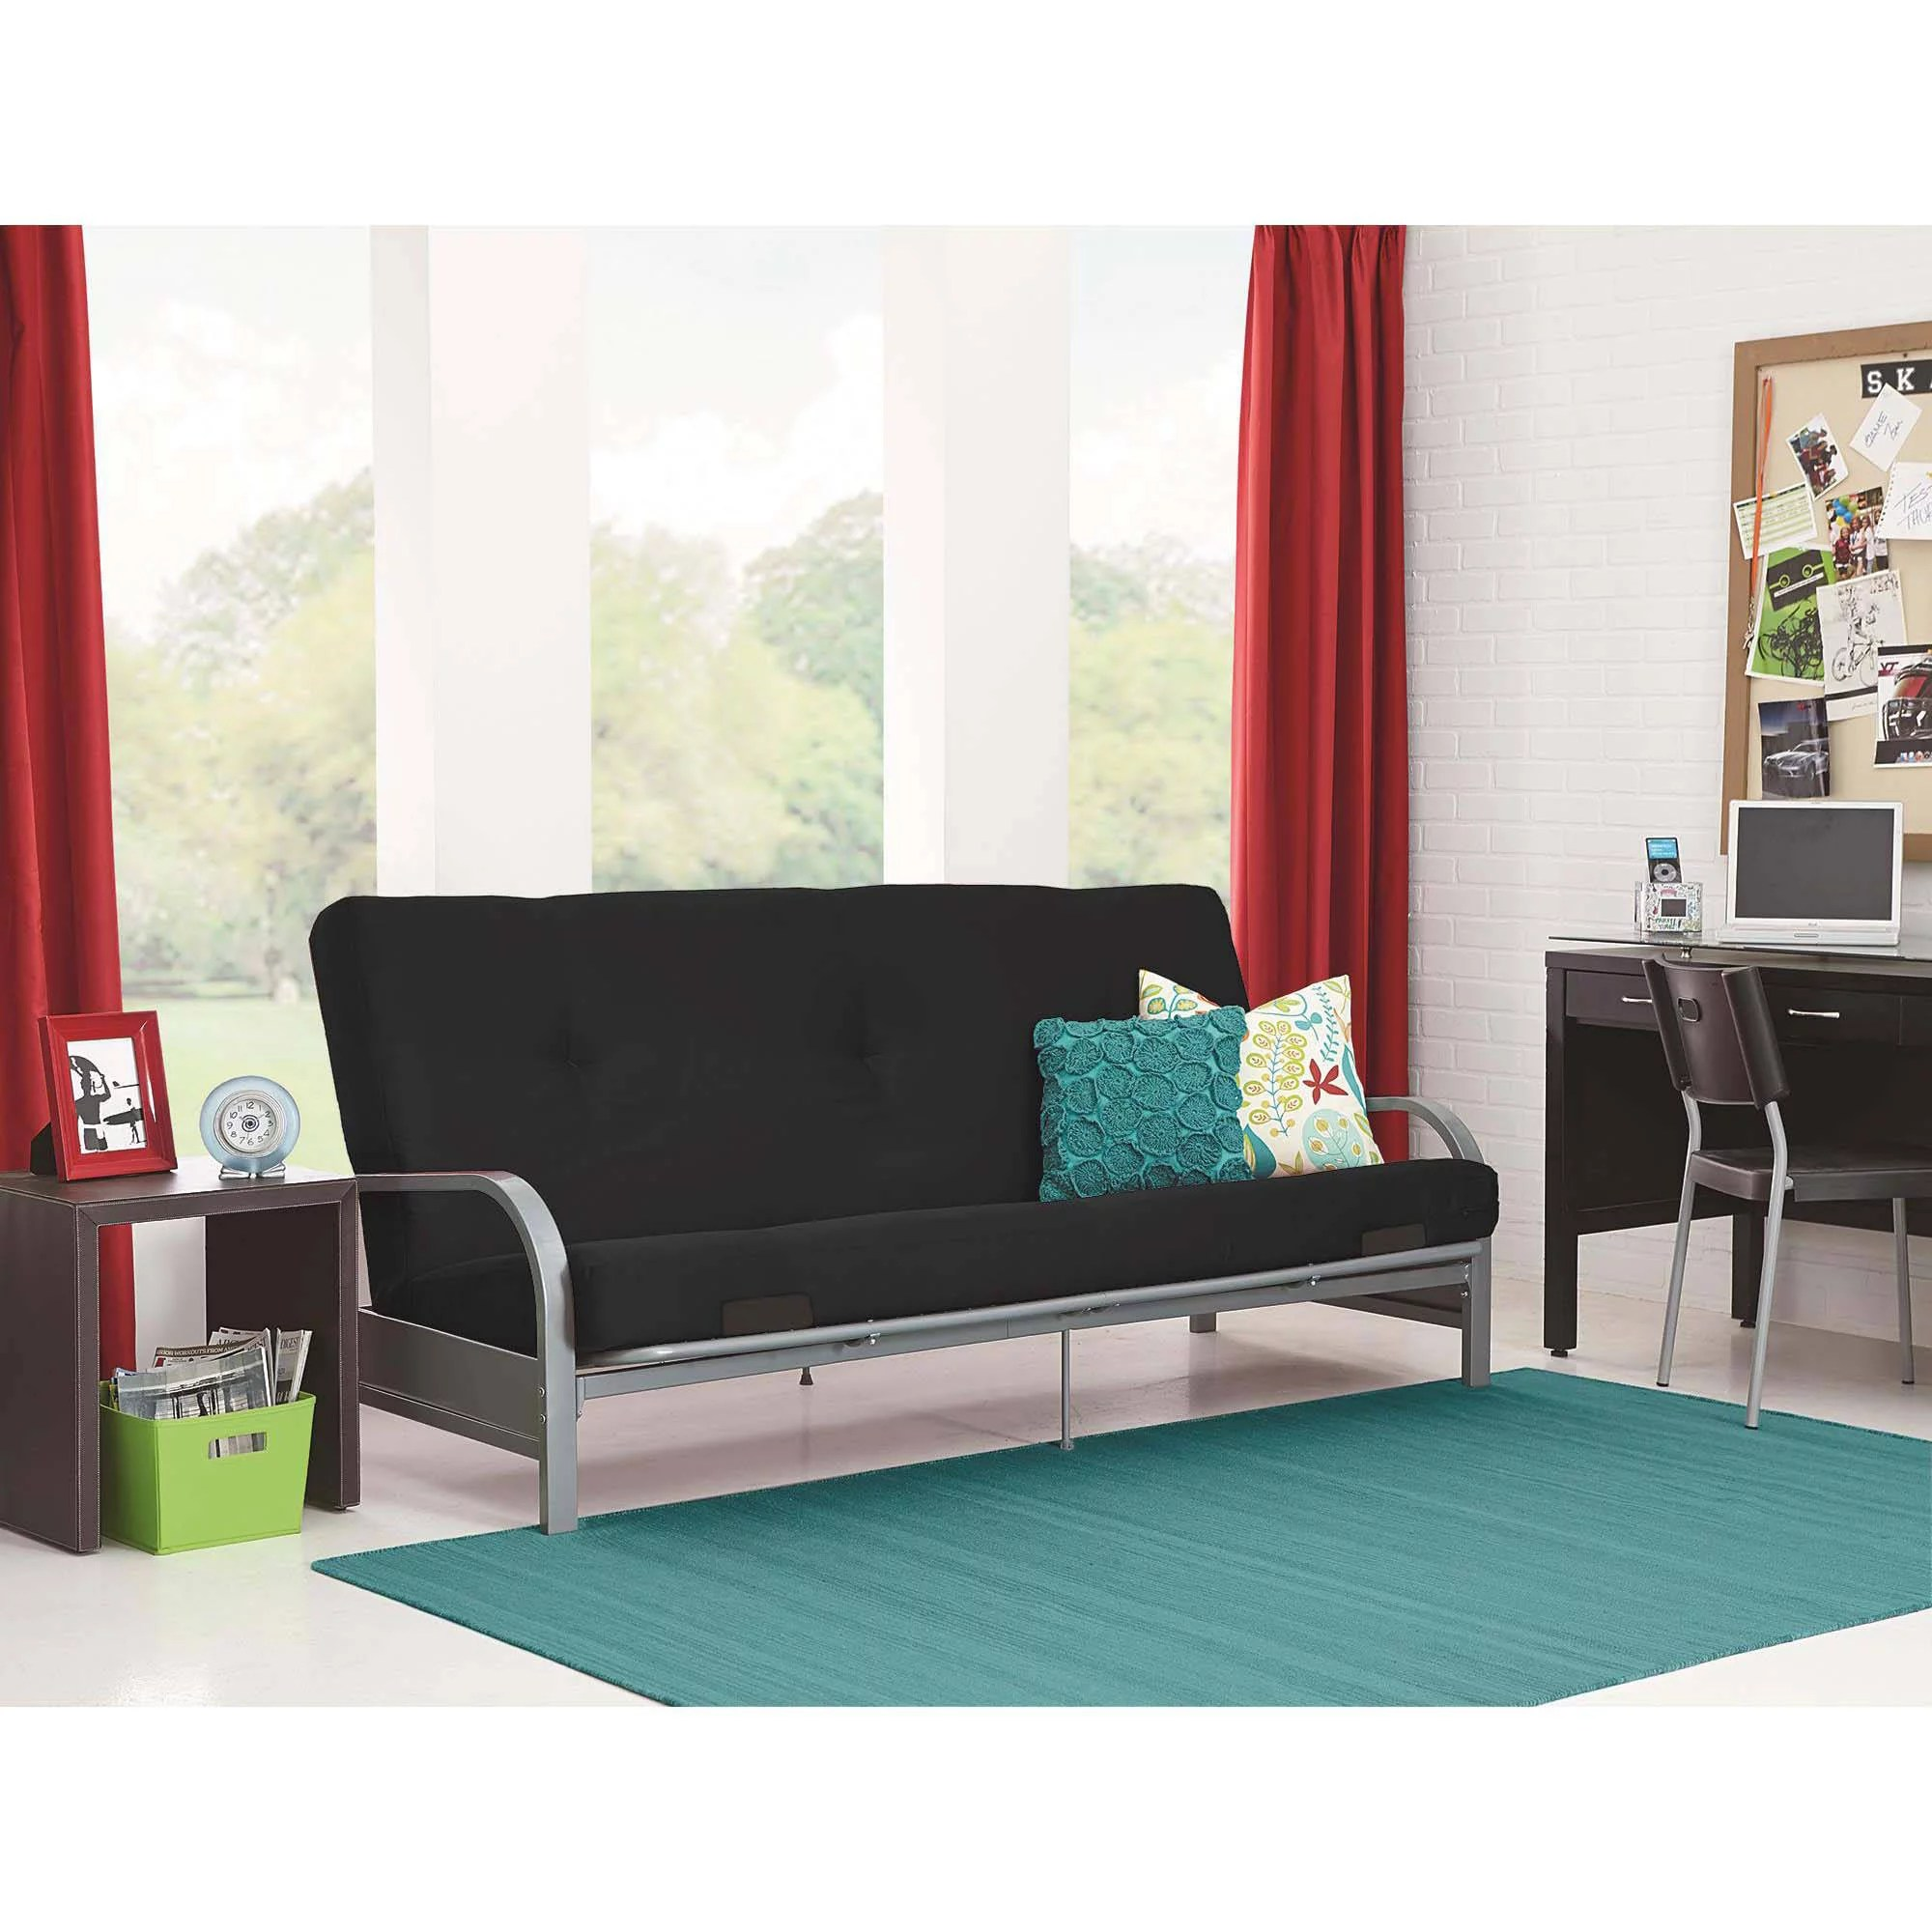 better homes and gardens mission wood arm futon - walmart